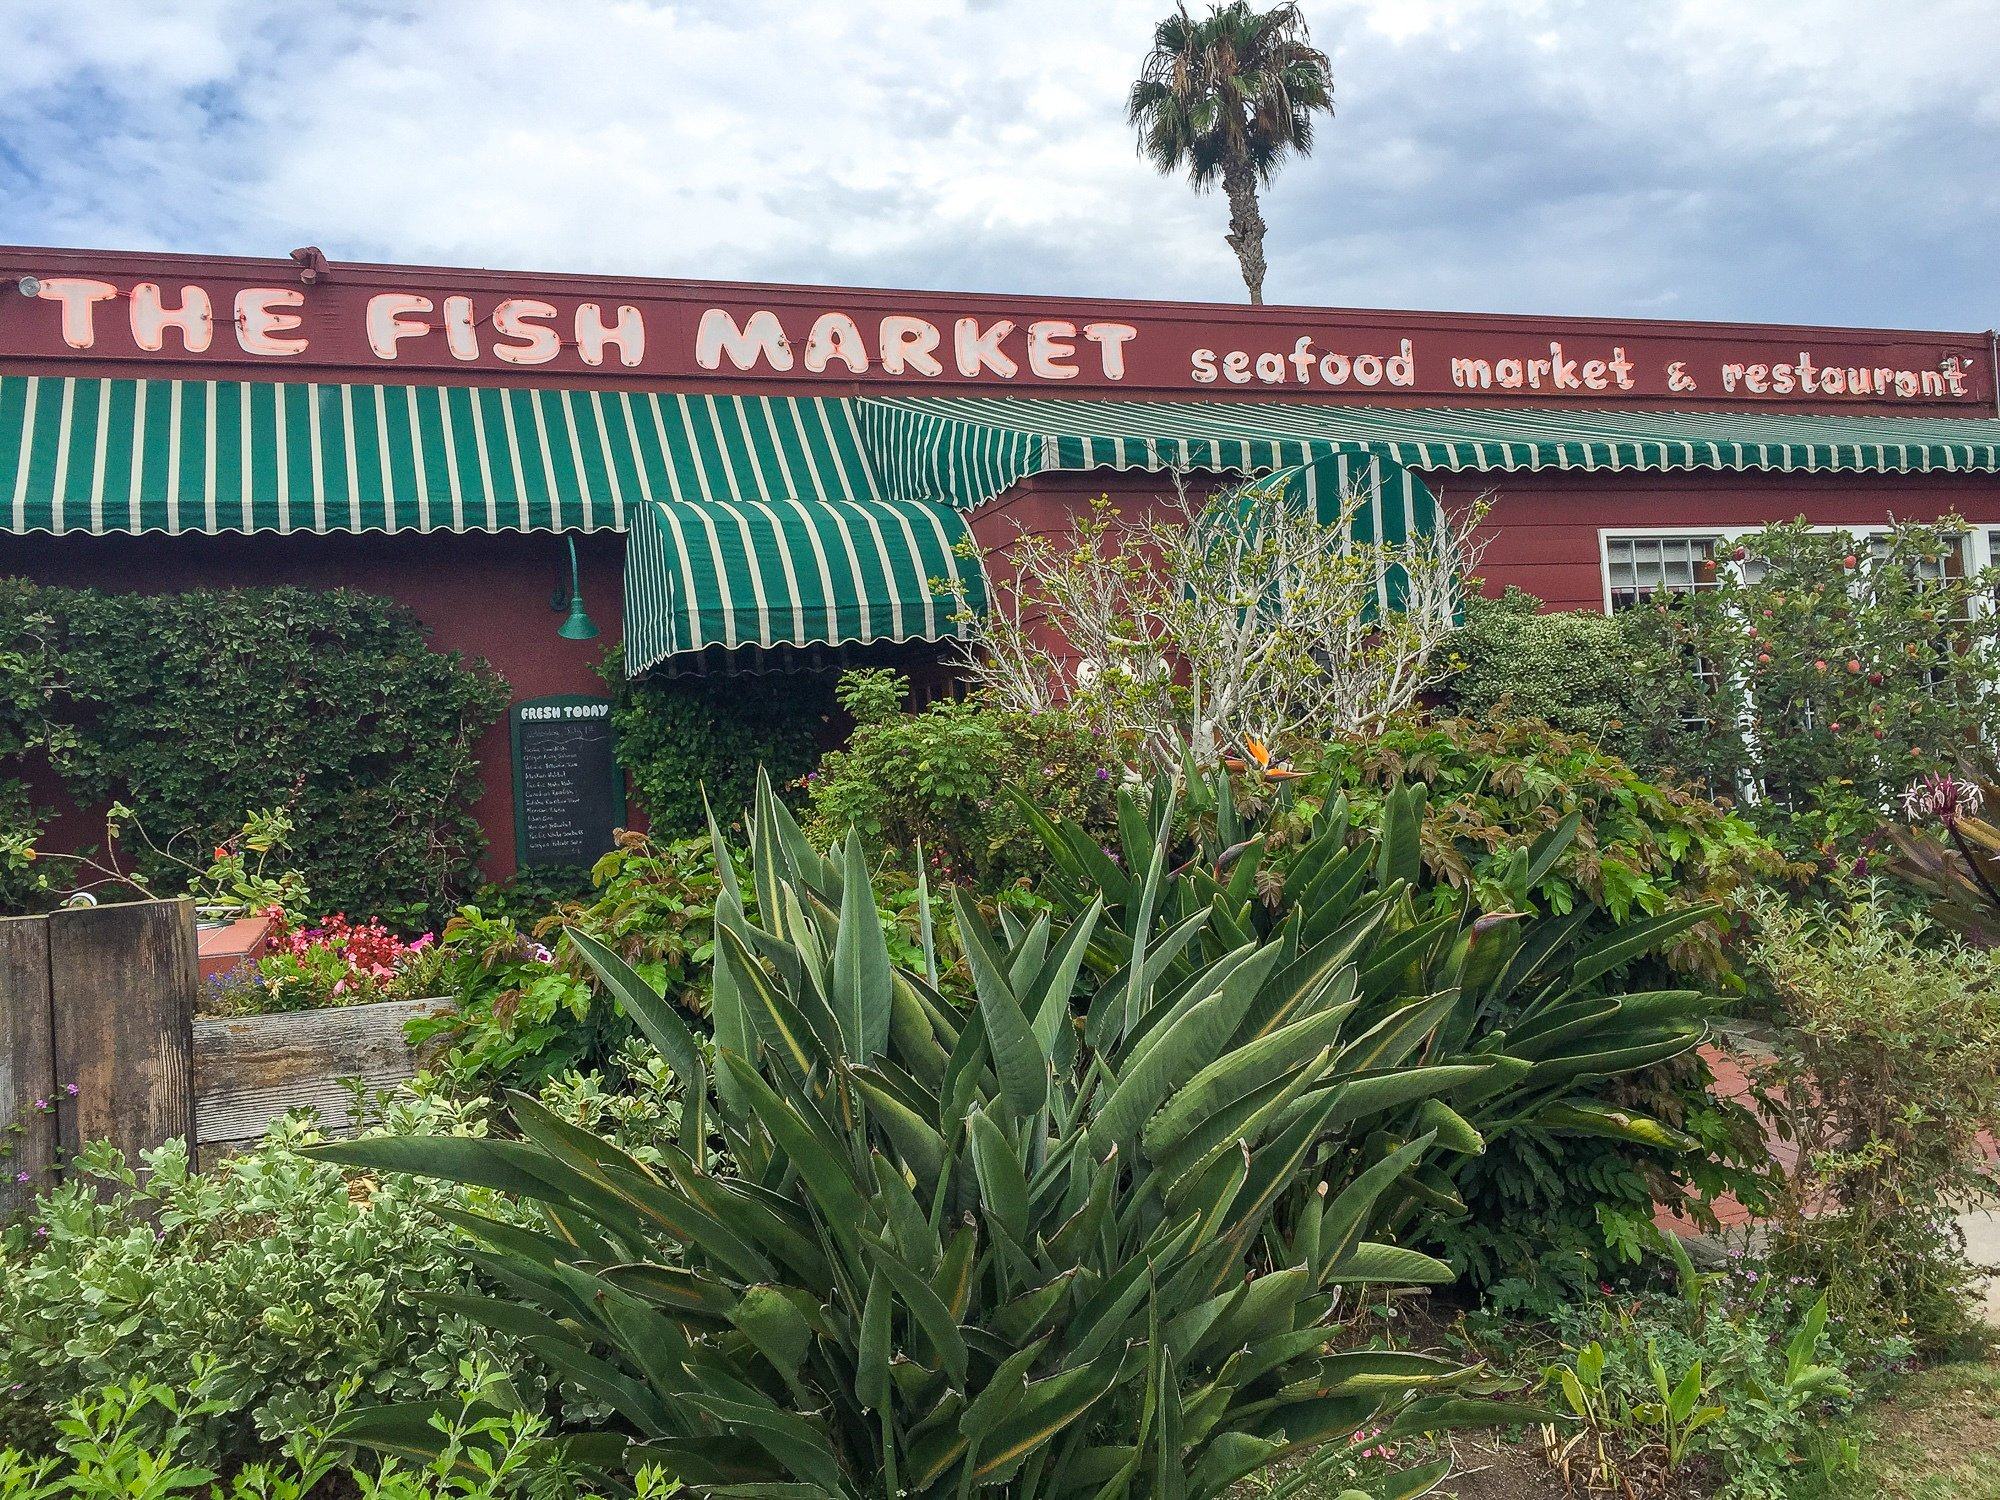 Fish Market in Del Mar, San Diego County